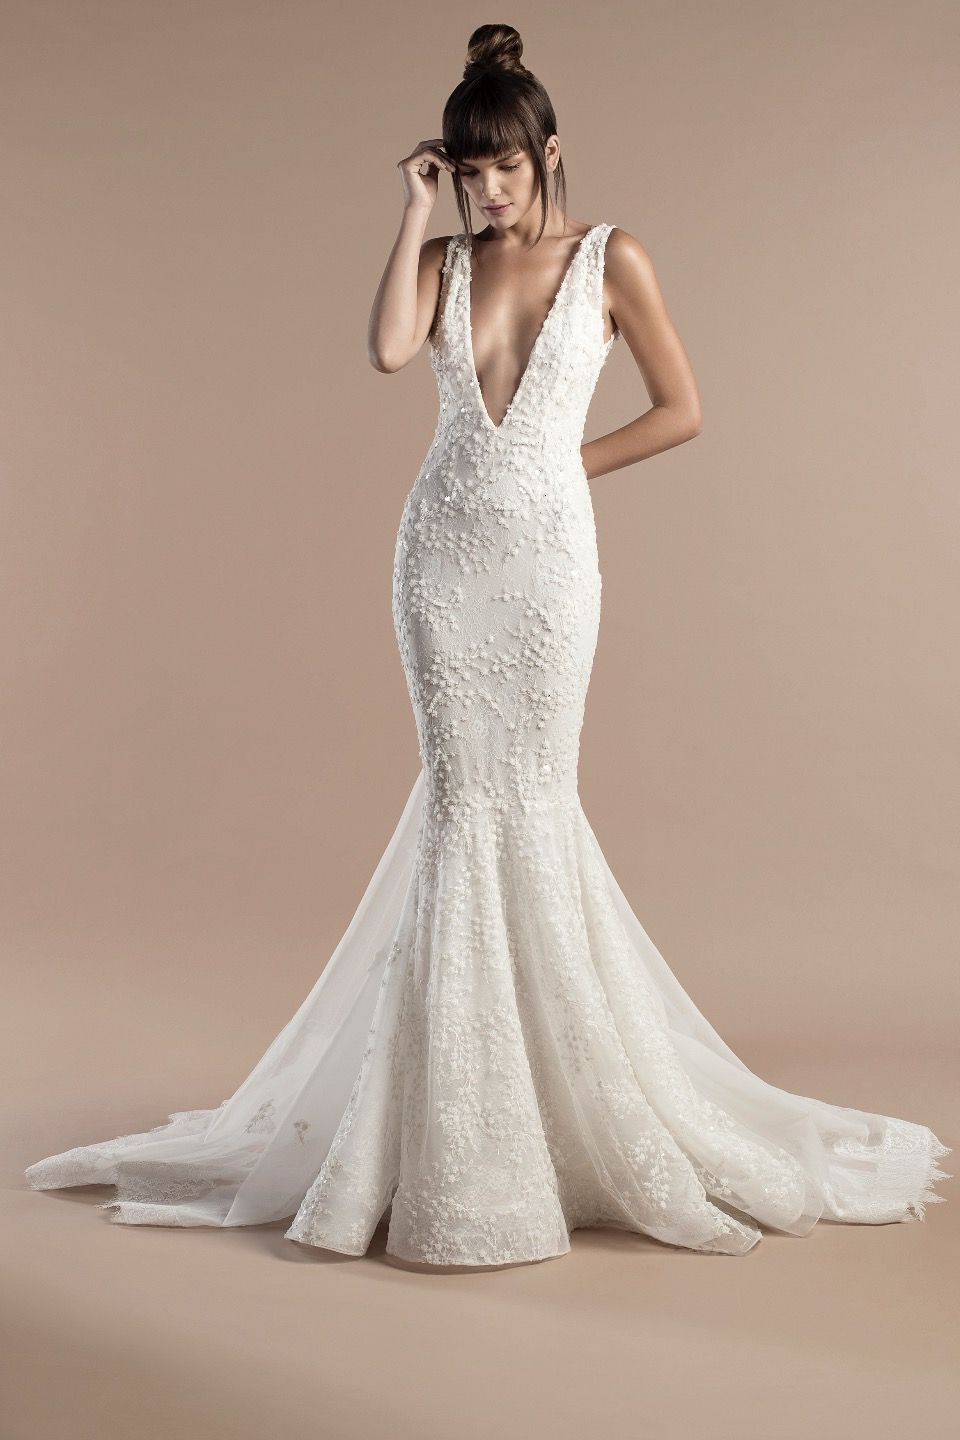 8f80057a56 Tony Ward Bridal 2018 l Nina l Off white mermaid dress in lace and  embroidered tulle